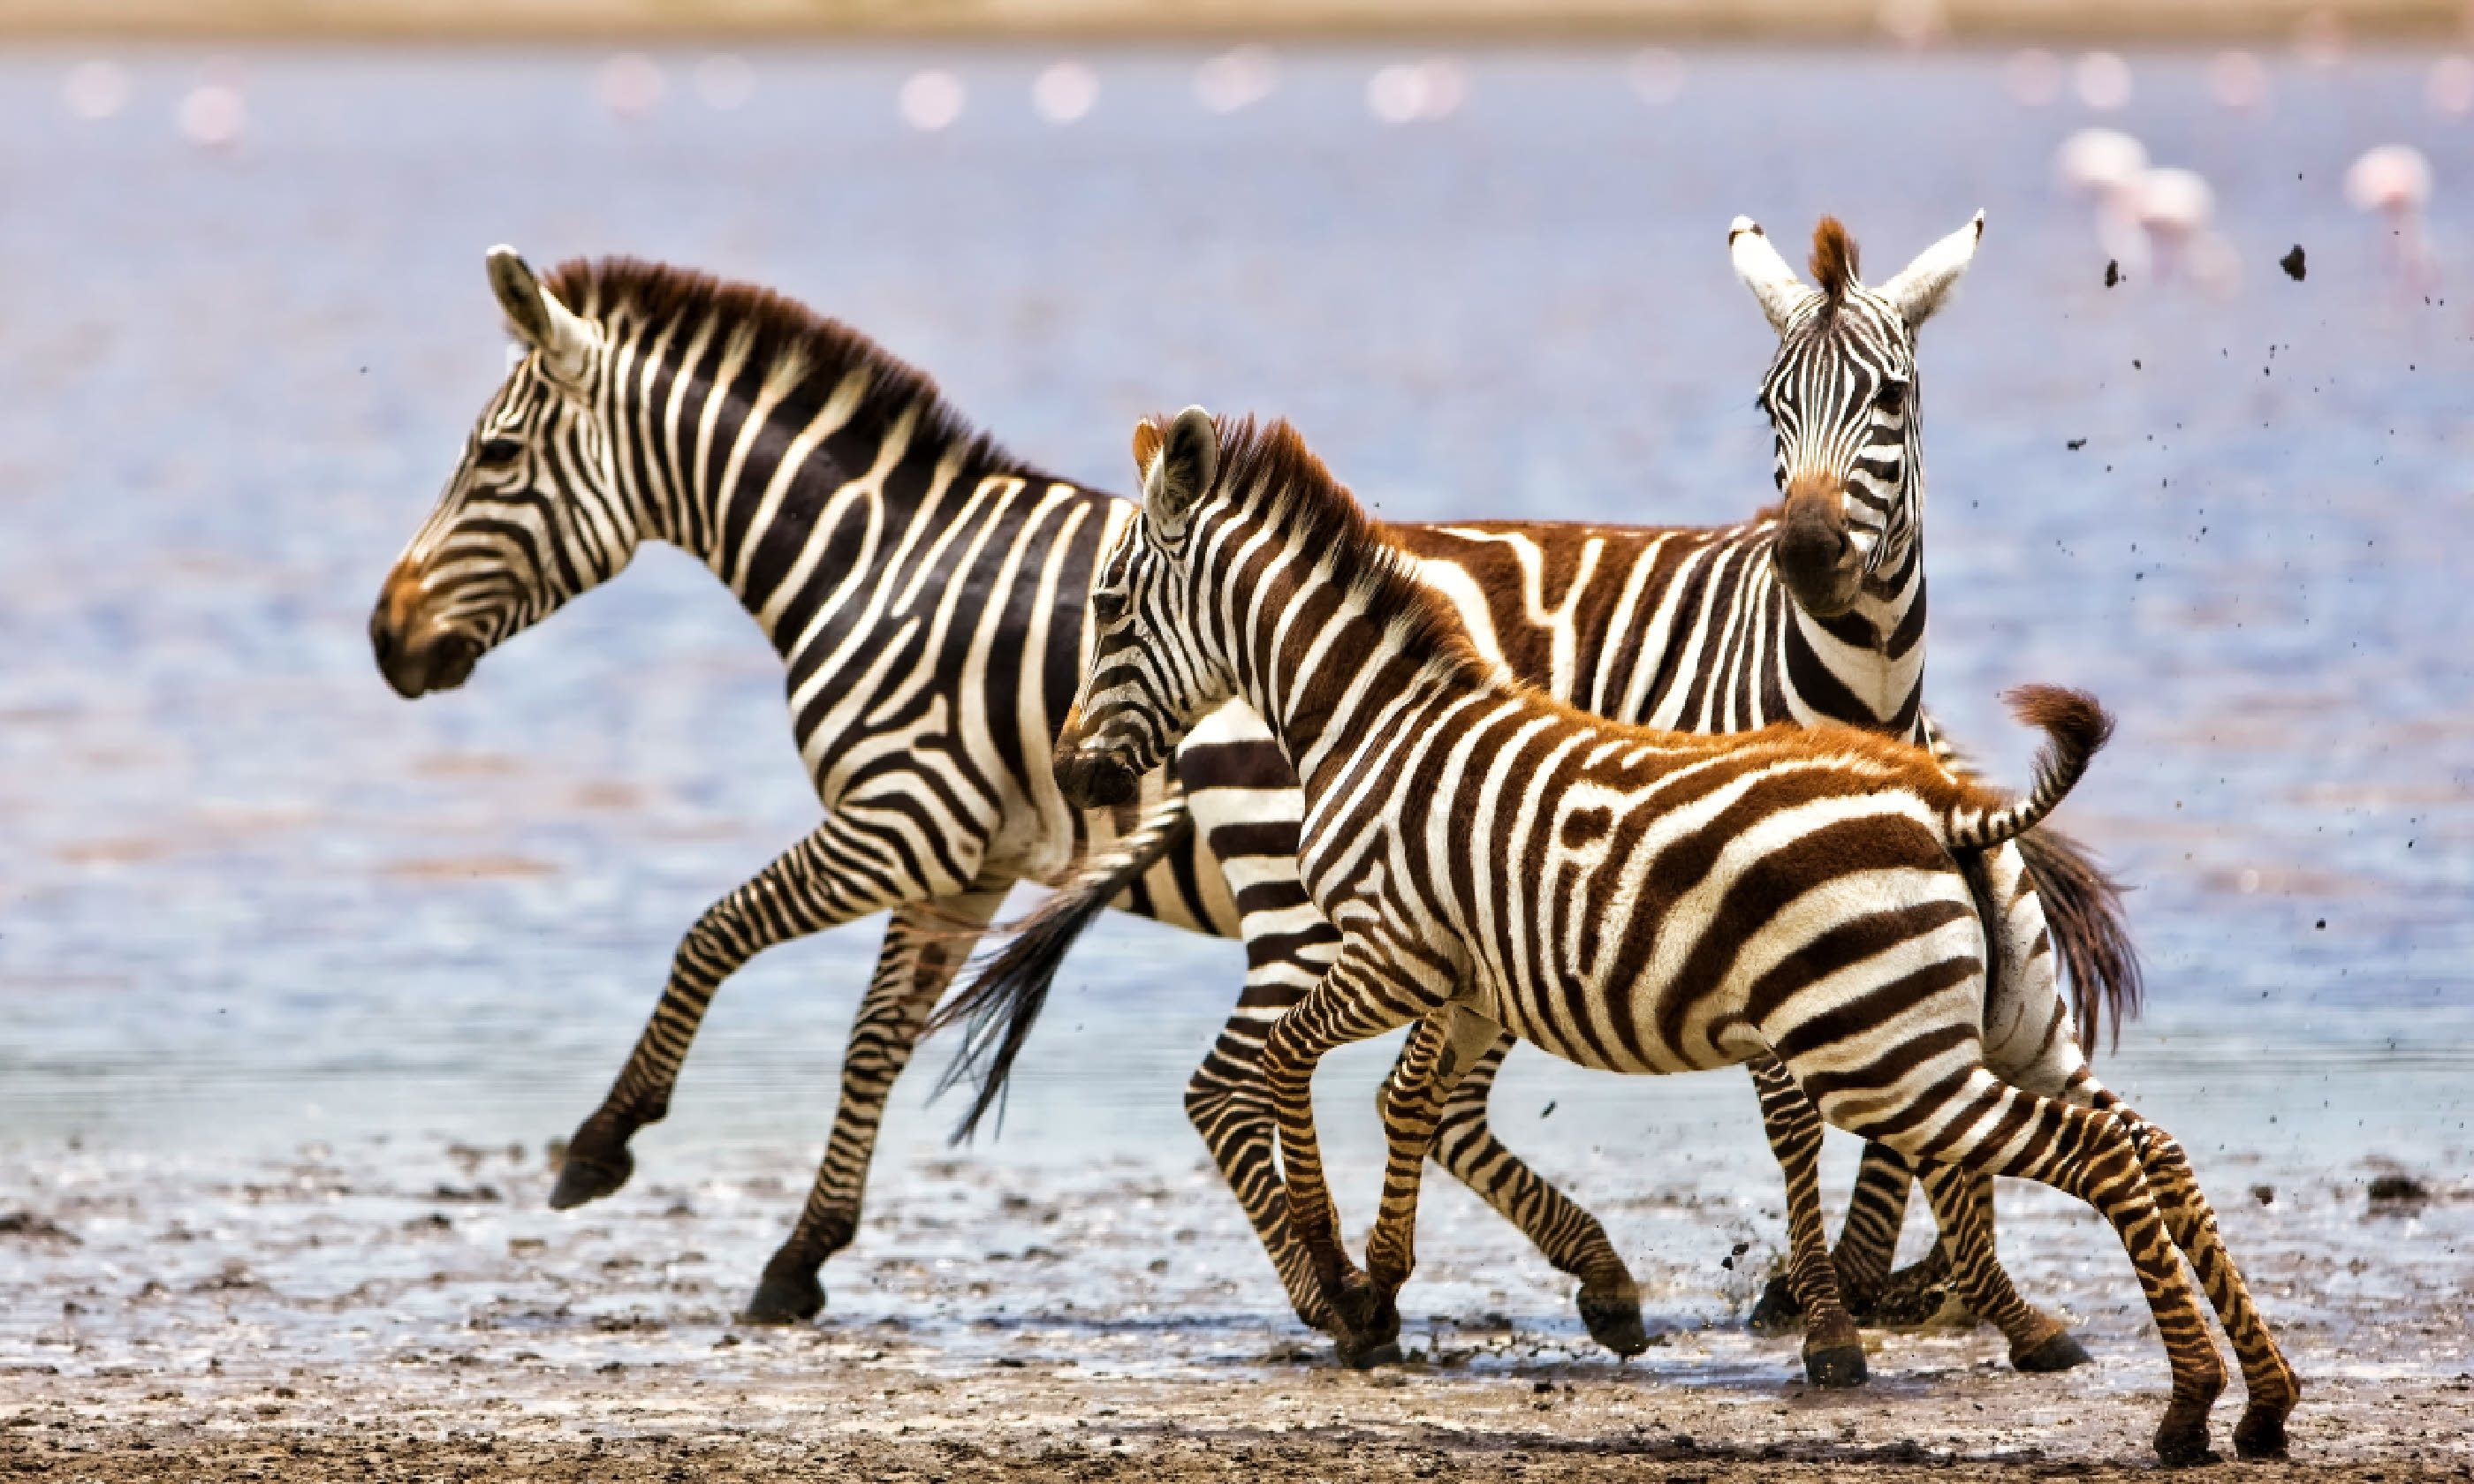 Zebras running beside Lake Ndutu in the Serengeti National Park (Shutterstock)